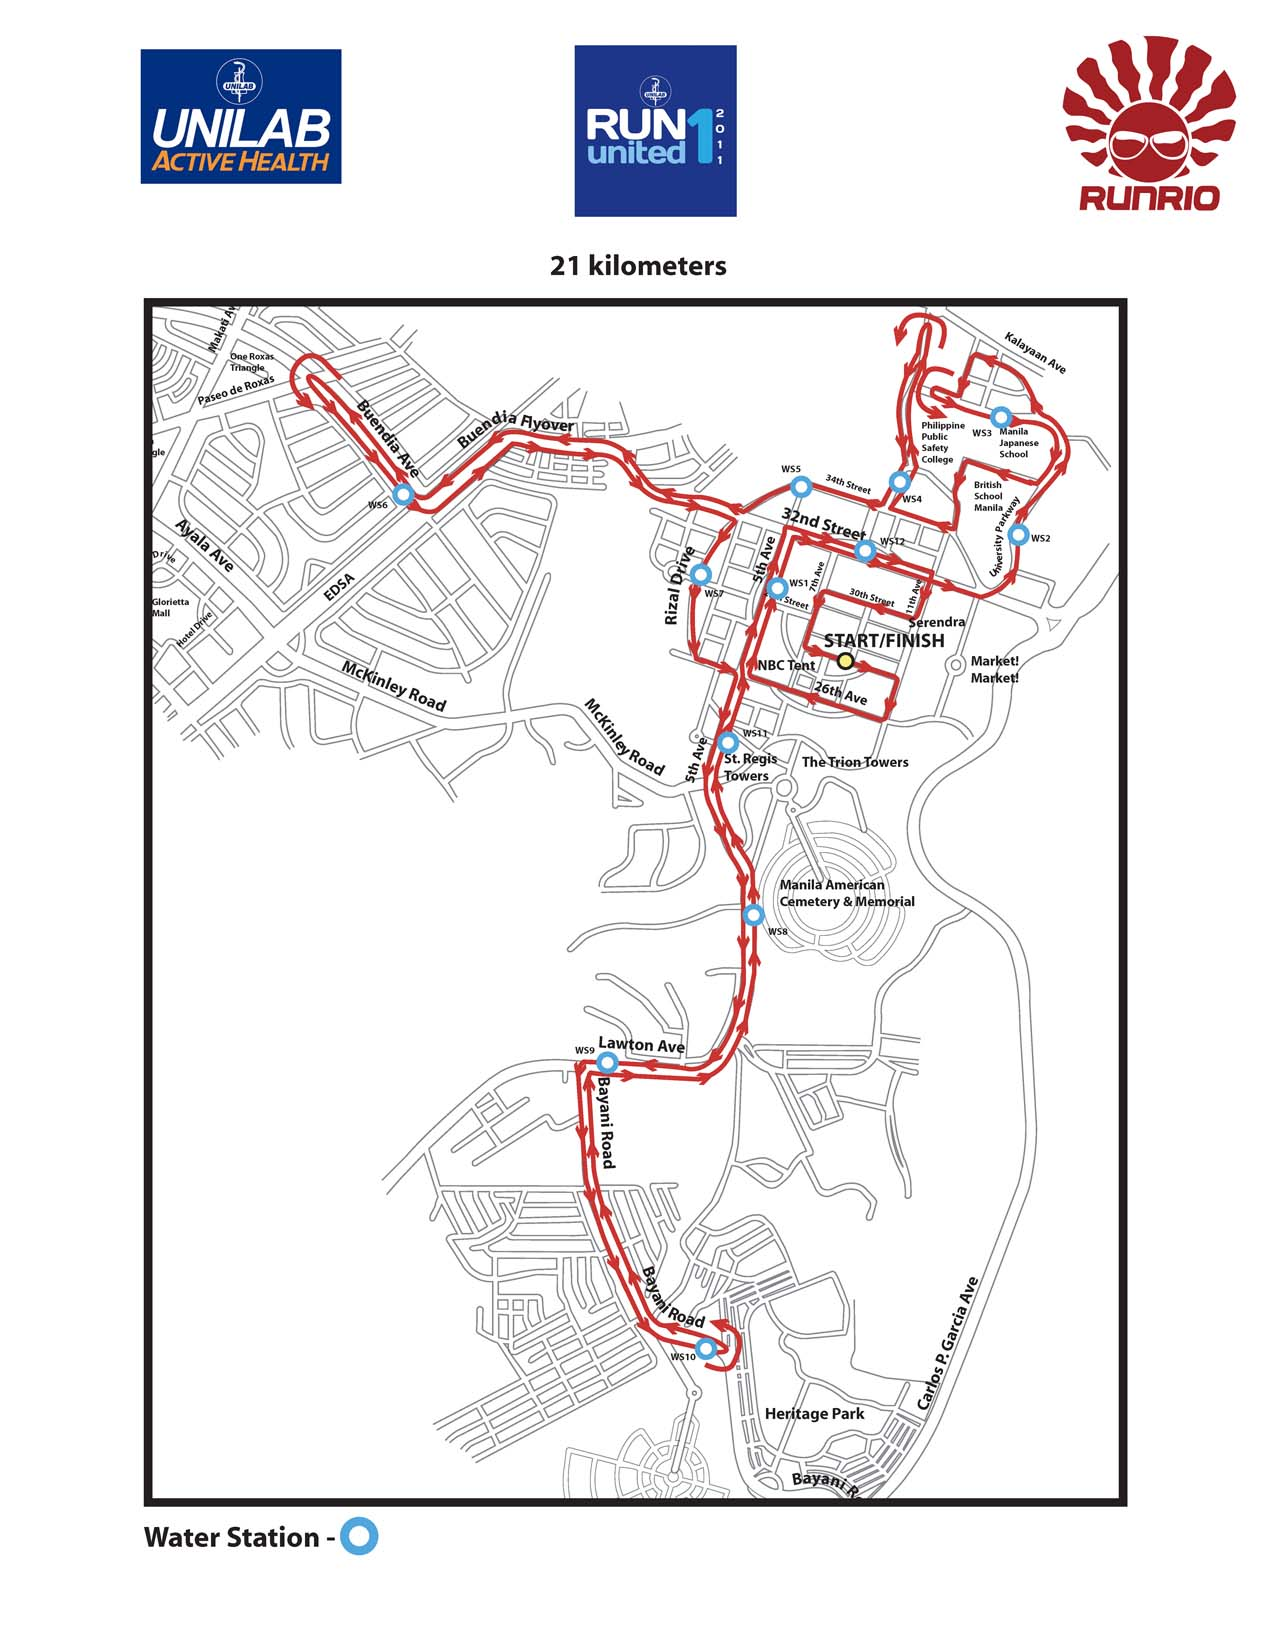 21km-Unilab-Race-Maps-2011